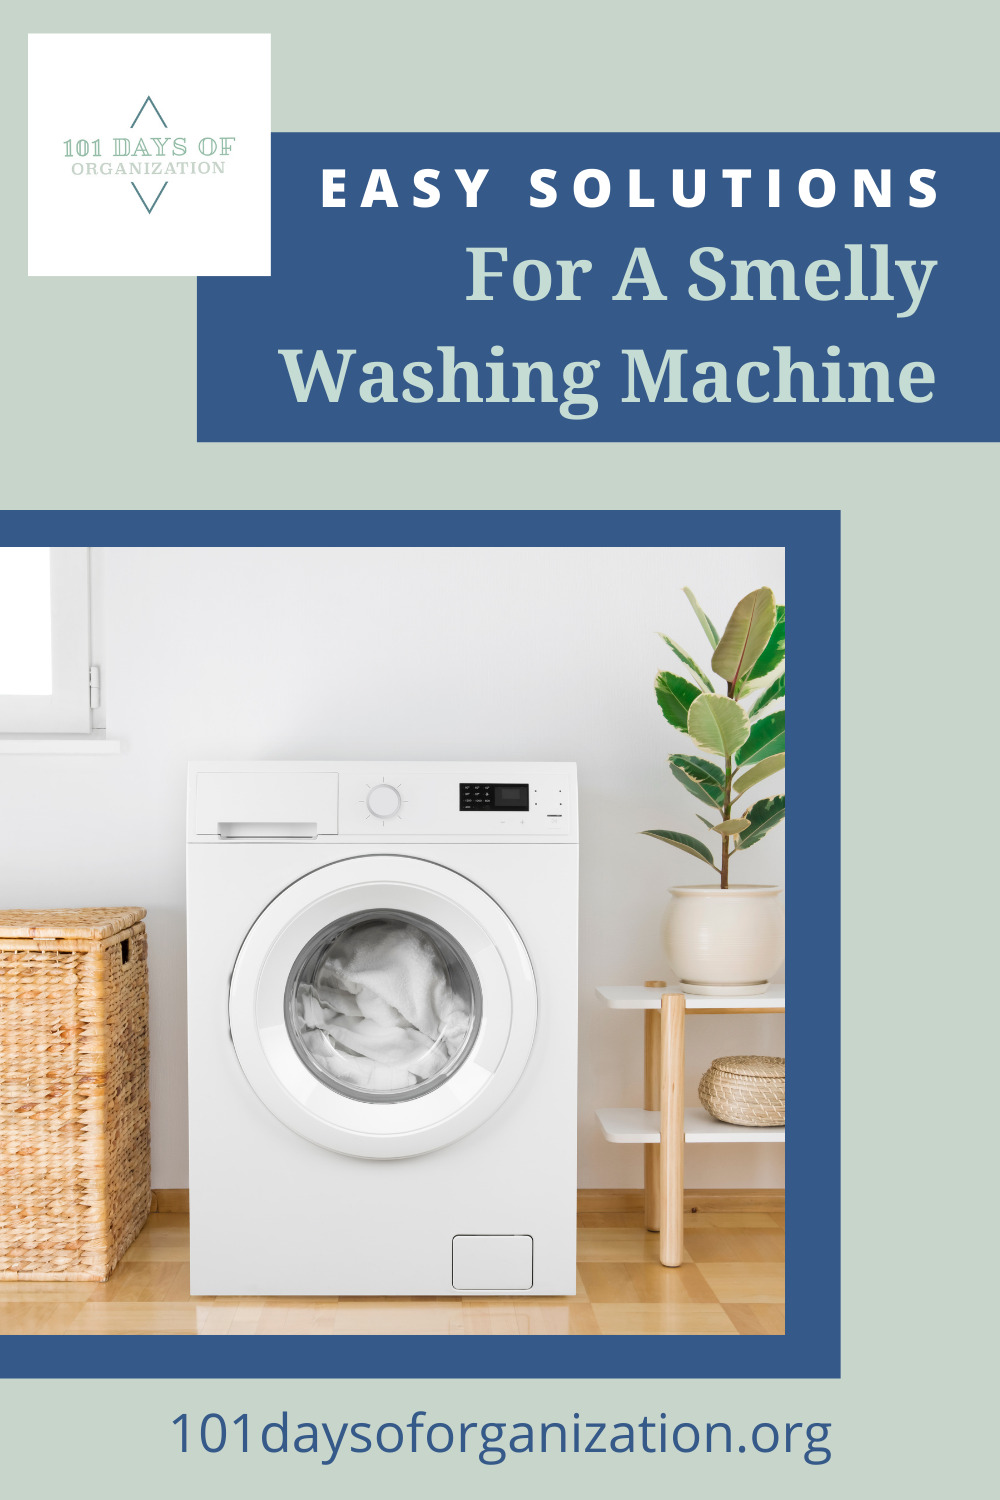 101daysoforganization.org is your destination for all things organization and cleaning. Find ideas and tips to help you clean even the trickiest spots. Learn how you can finally get rid of that funky smell coming from inside your washer!